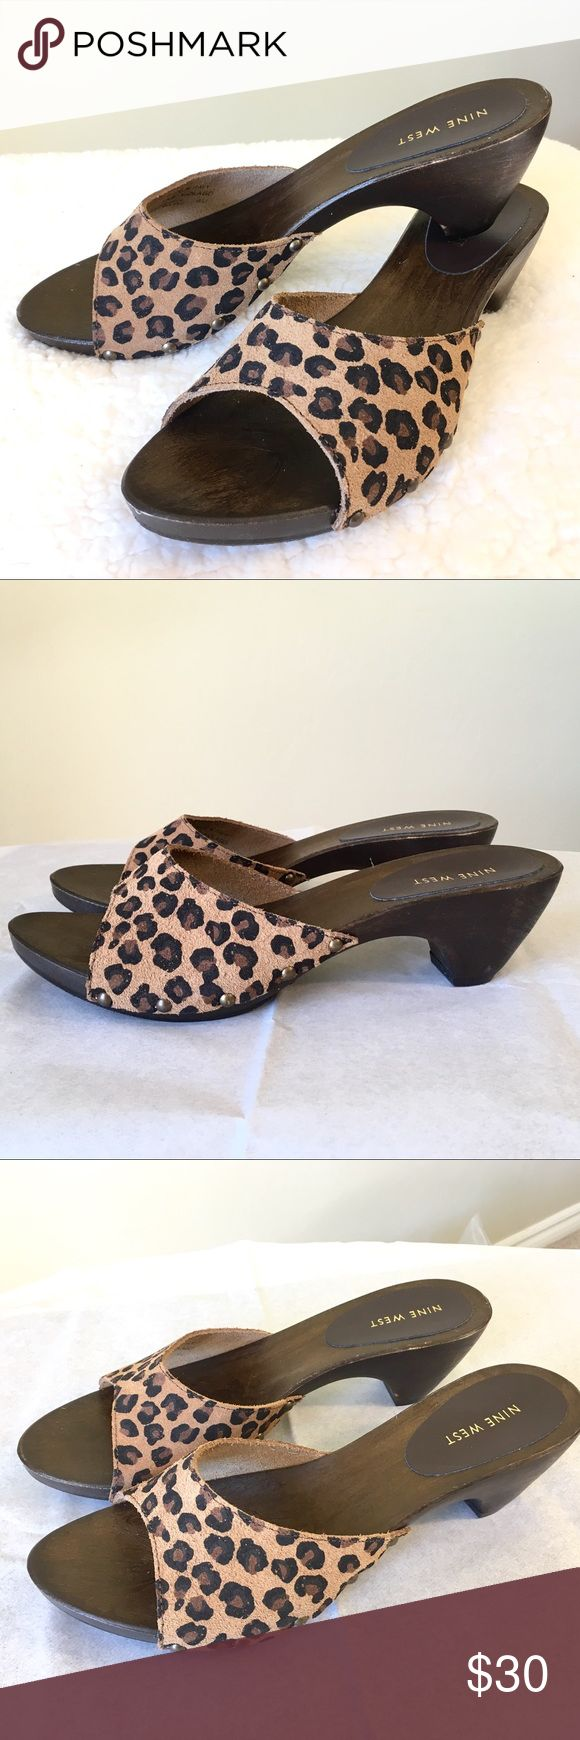 Nine West Leopard Sandals Size 9 New but No Box Nine West Leopard Sandals Size 9 New but No Box. I only tried them on wearing around the house. Please note there are scratches on the side of the wooden sole and the side of the heel (See last photo) Nine West Shoes Sandals